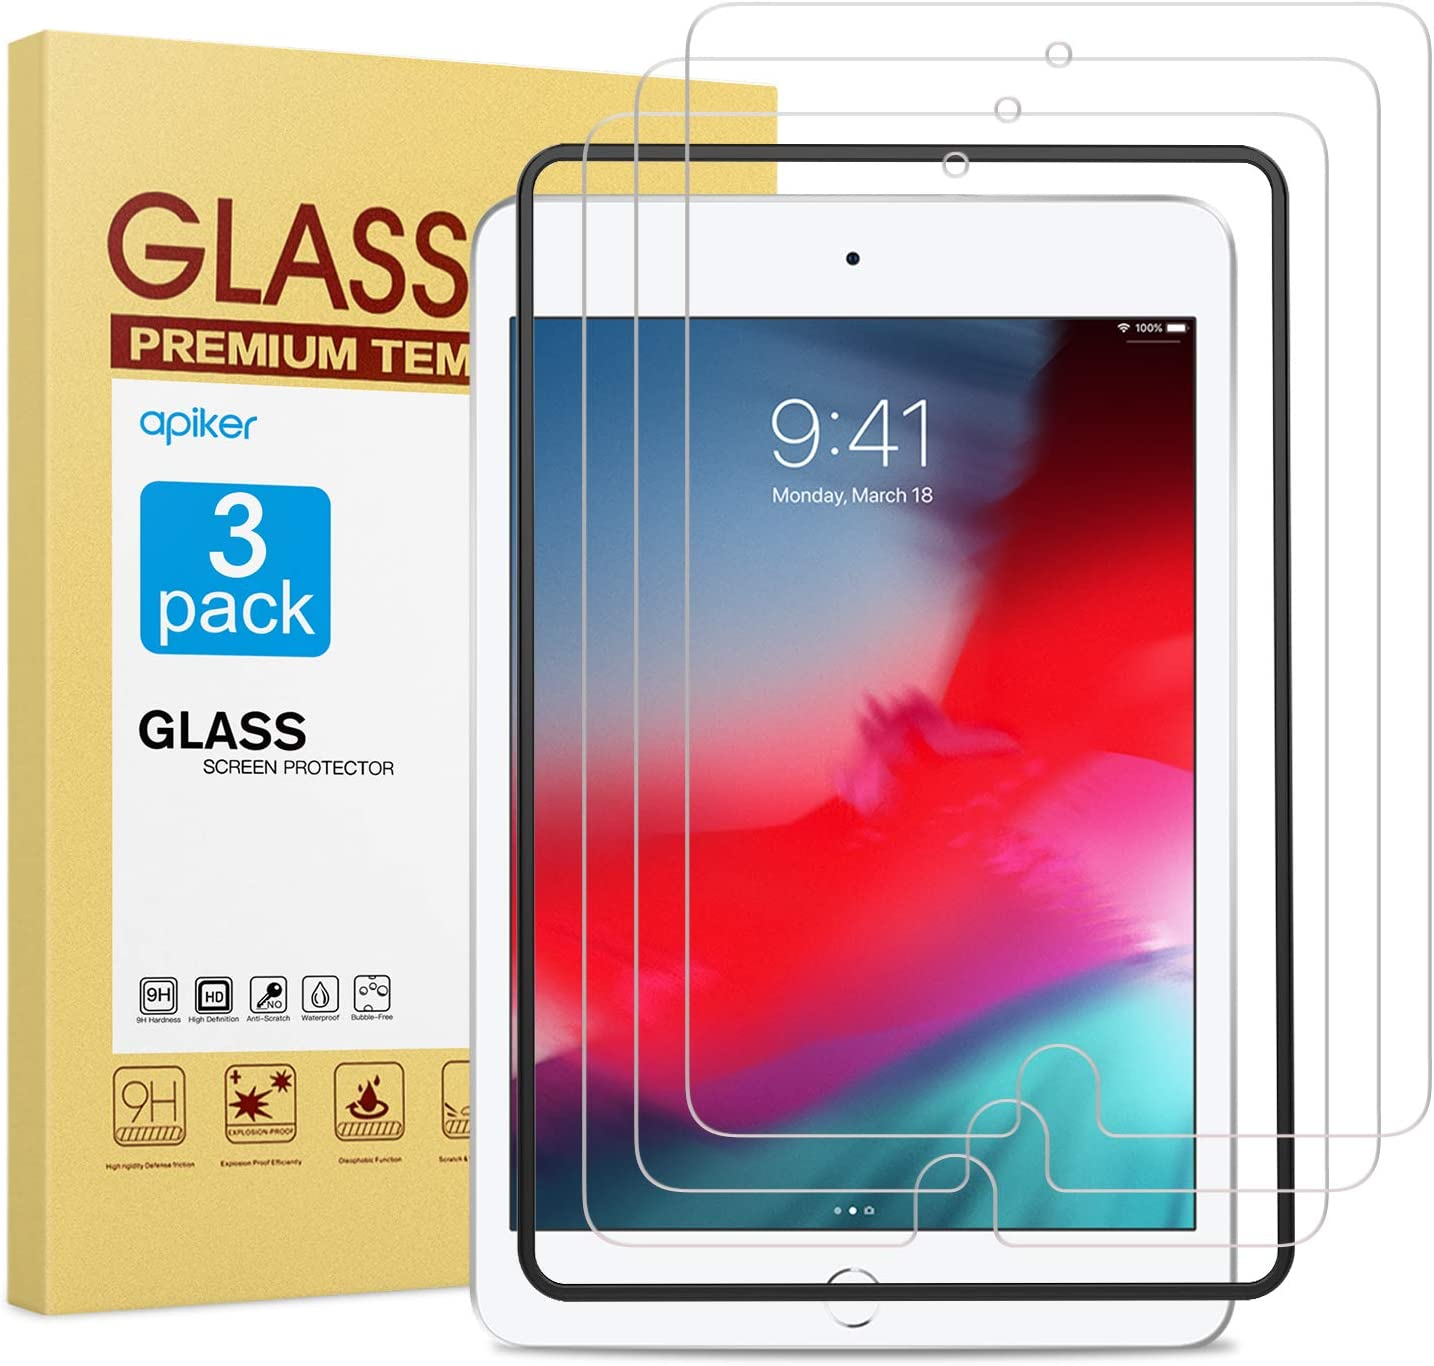 apiker [3-Pack] Screen Protector for iPad Mini 5 2019 / iPad Mini 4, 9H Hardness Tempered Glass Screen Protector with Alignment Frame/Scratch Resistant for iPad Mini 5/4, 9.7 Inch